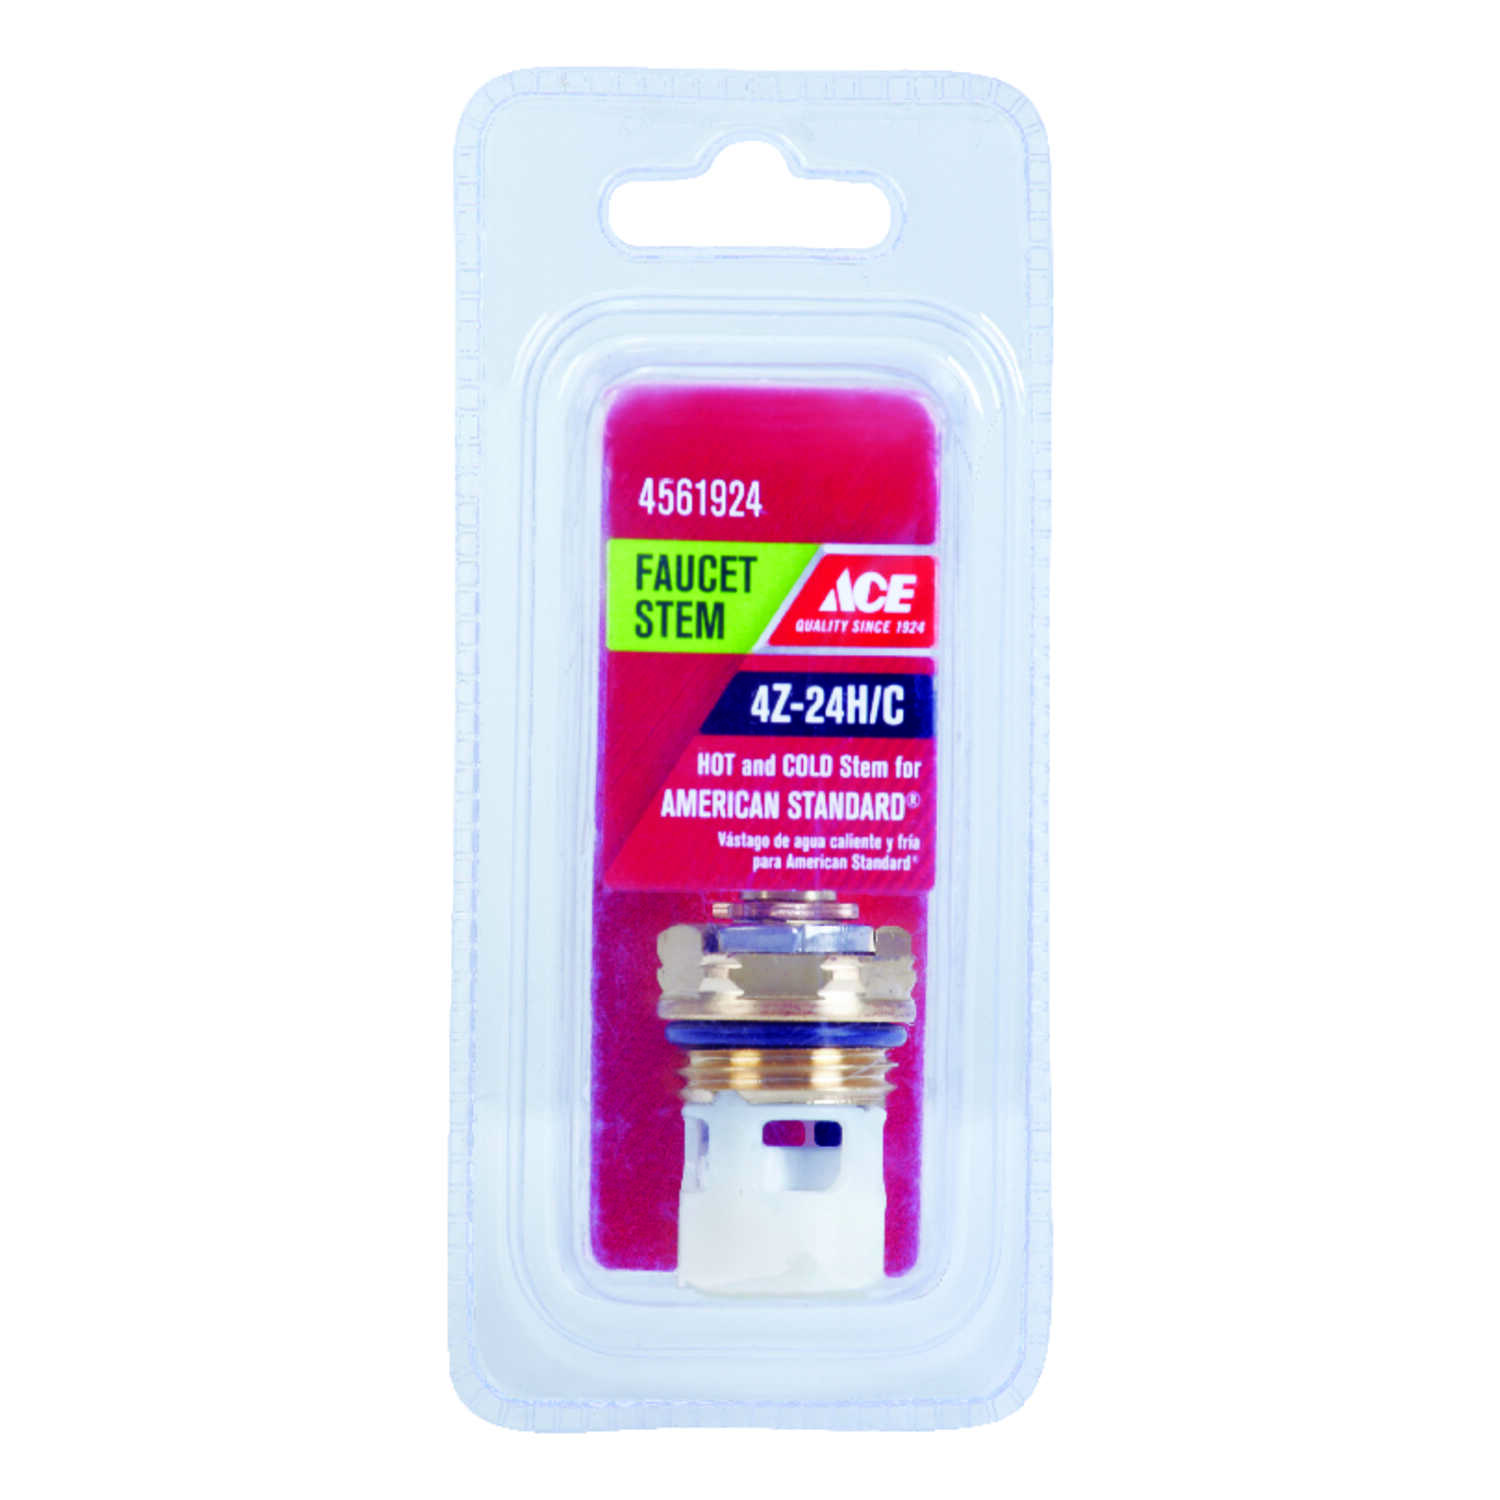 Ace  Hot and Cold  4Z-24H/C  Faucet Stem  For American Standard